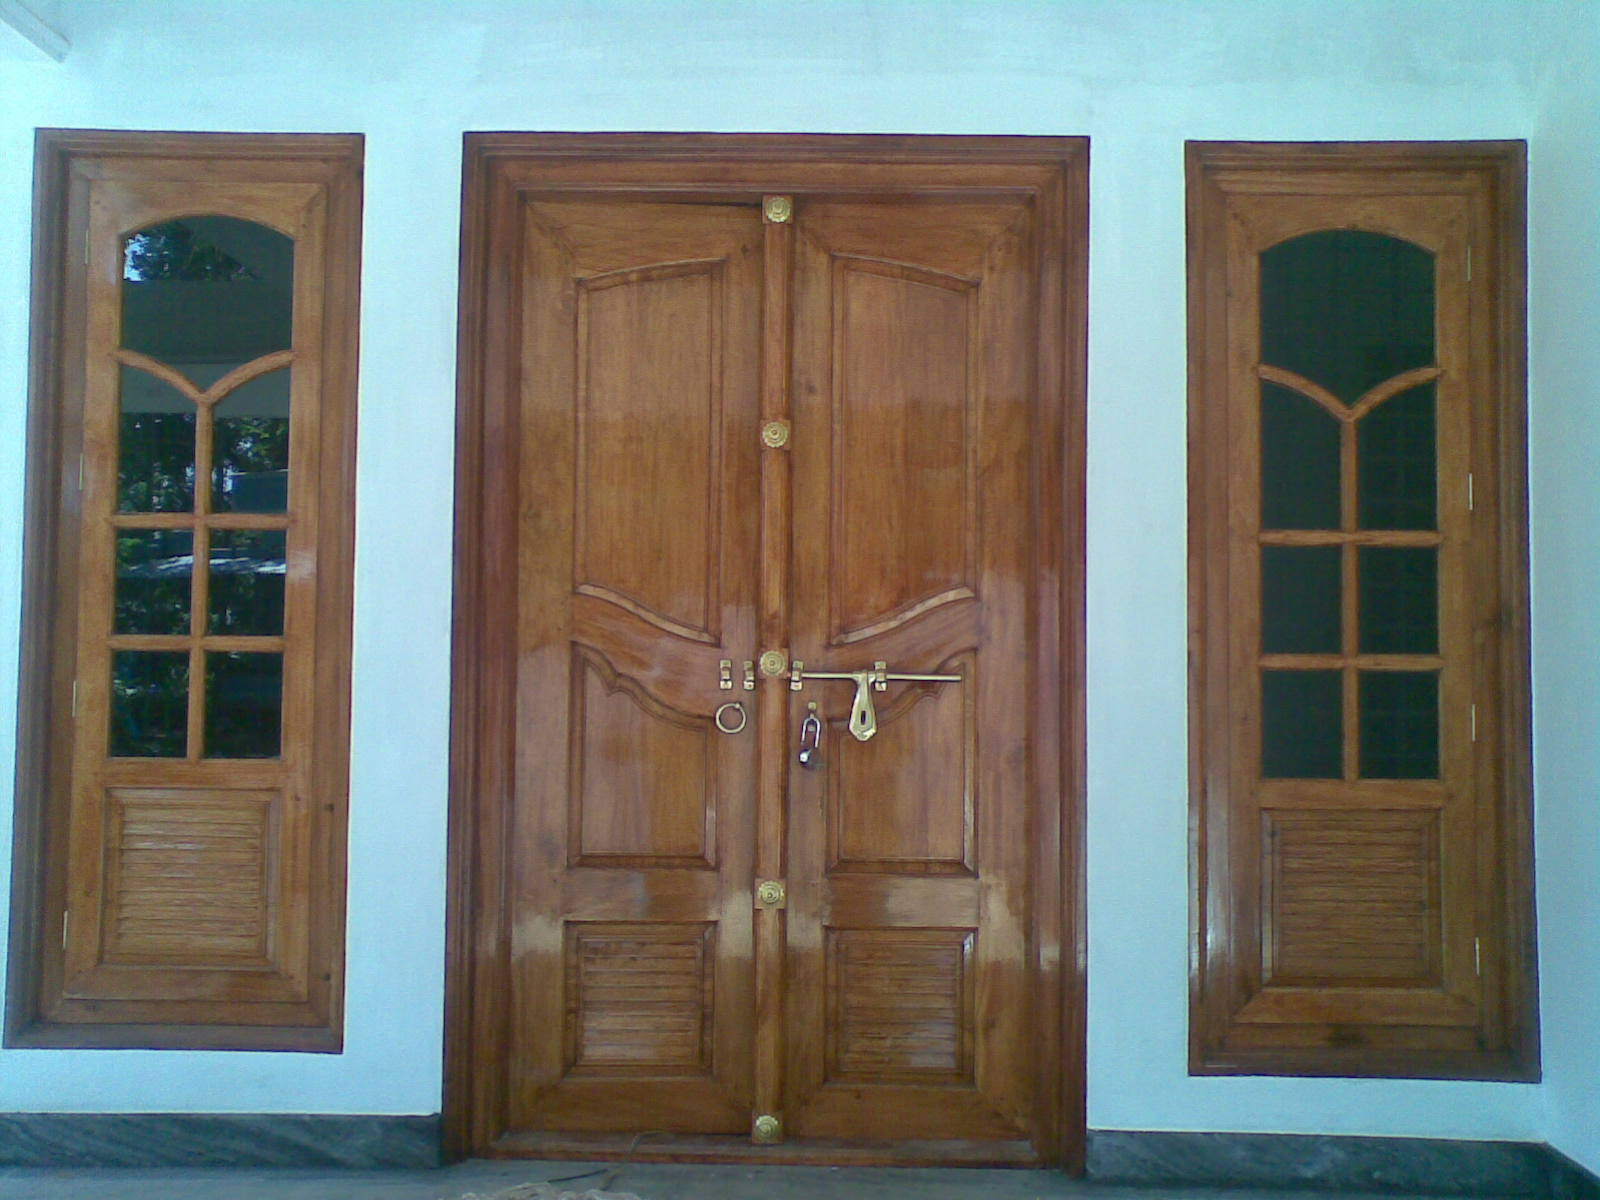 Bavas wood works kerala style wooden front door double for Indian main double door designs